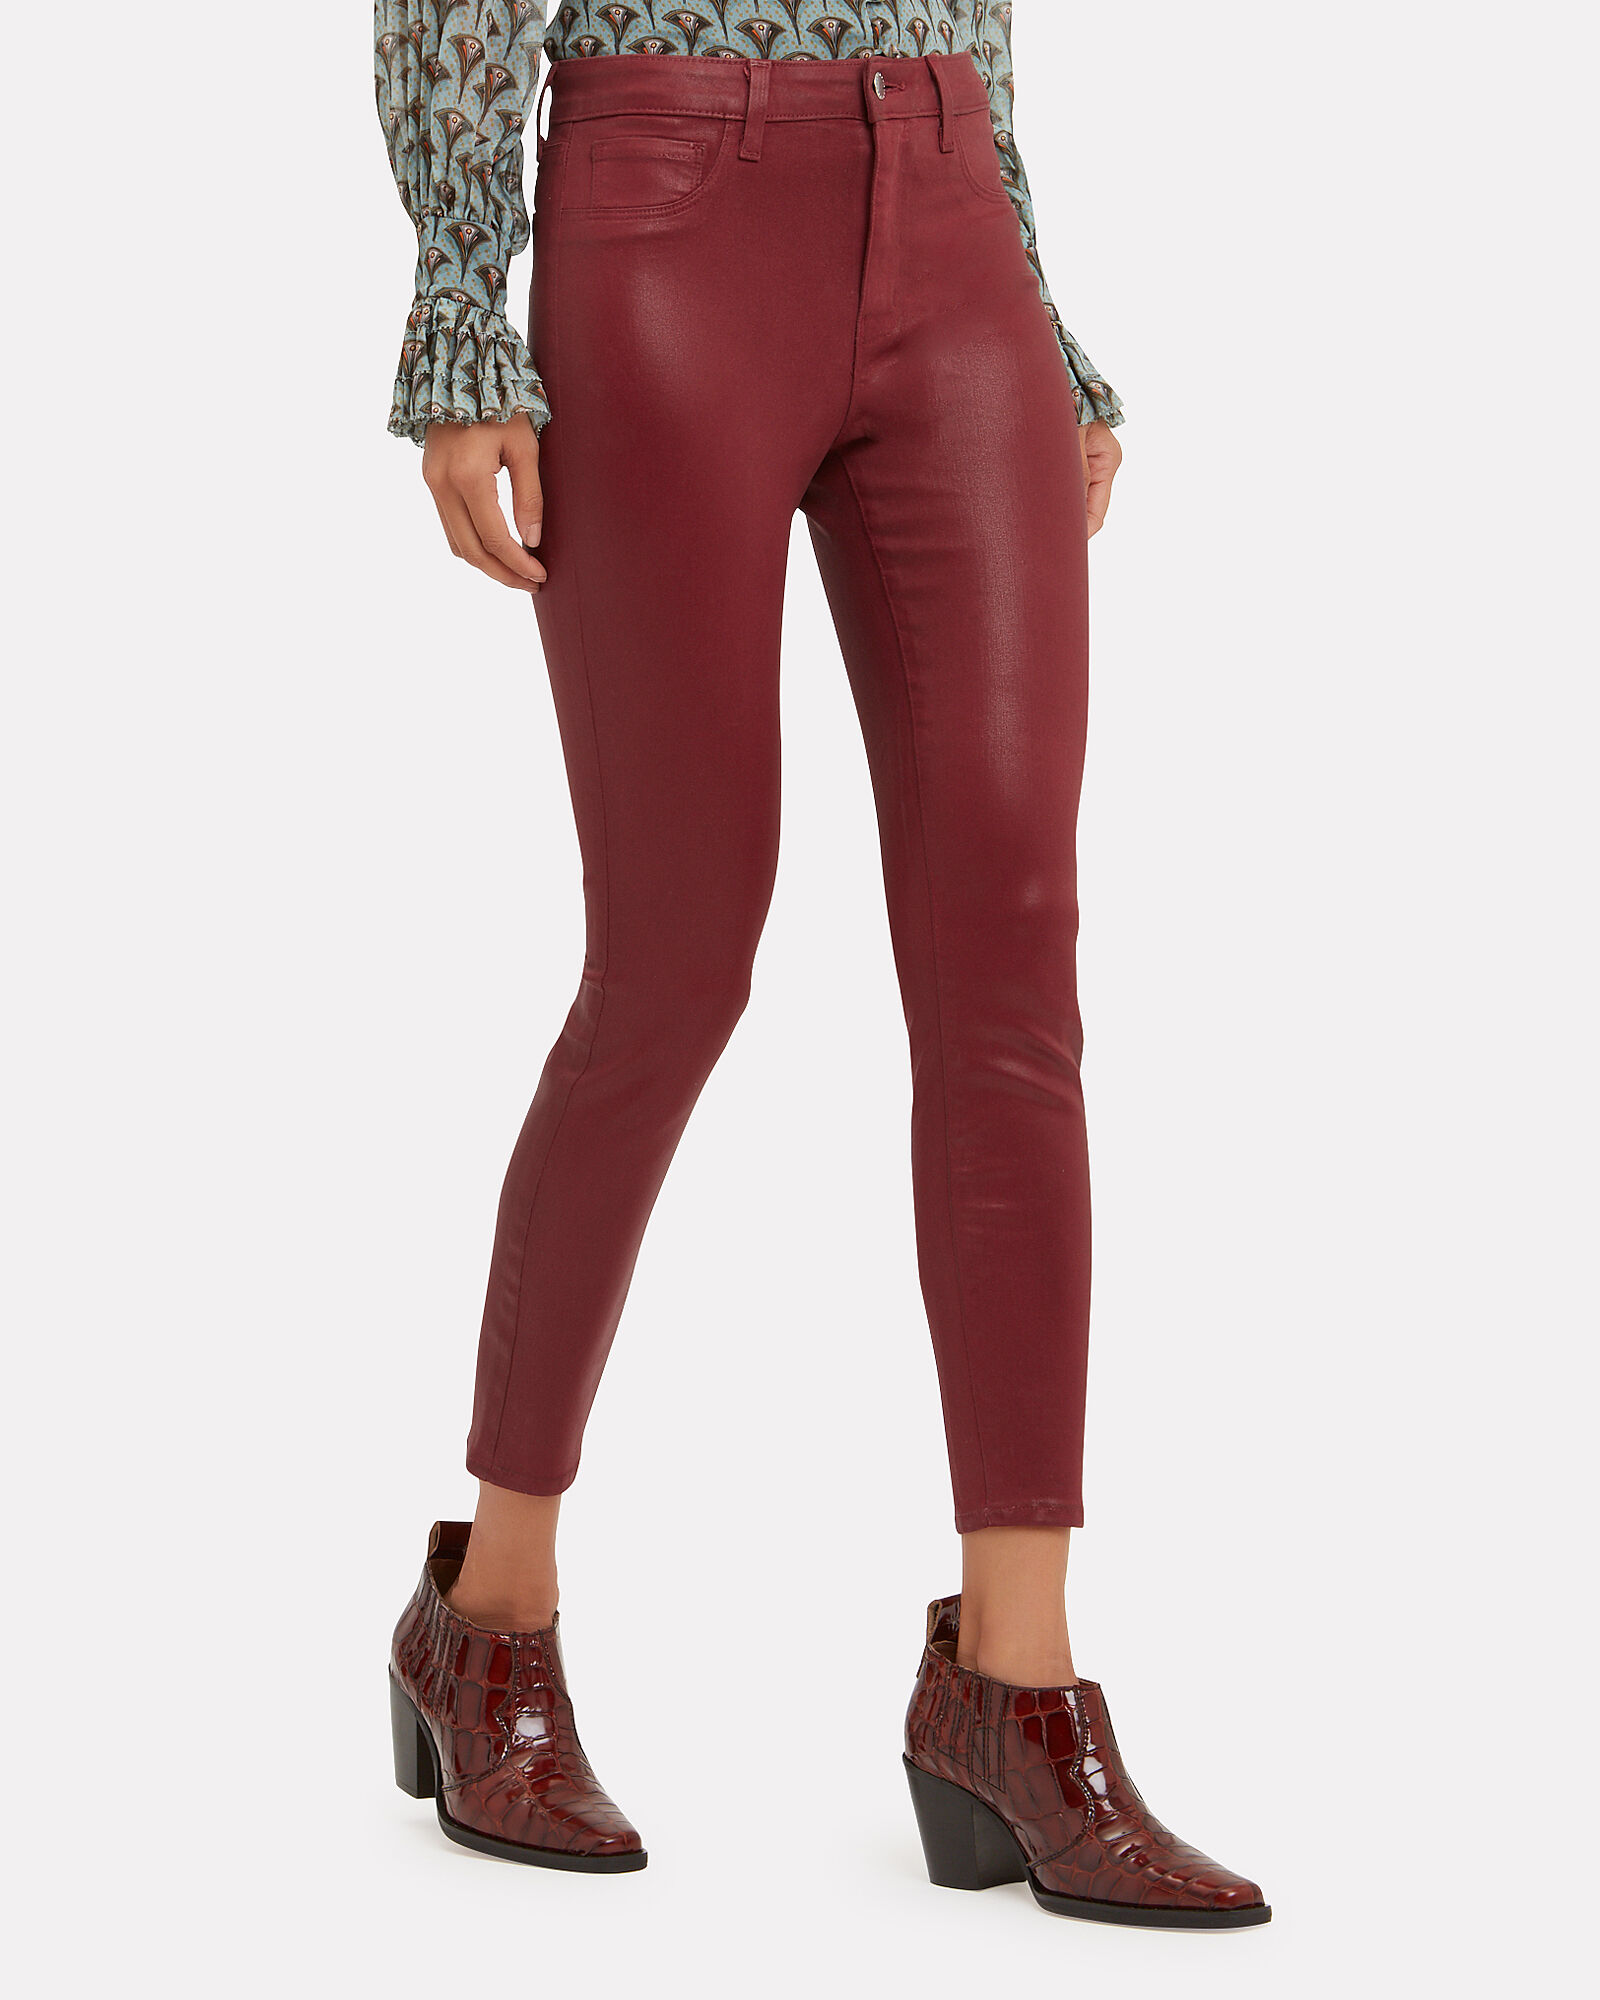 d3fdbf2ee6 ... Margot Berry Coated High-Rise Ankle Skinny Jeans